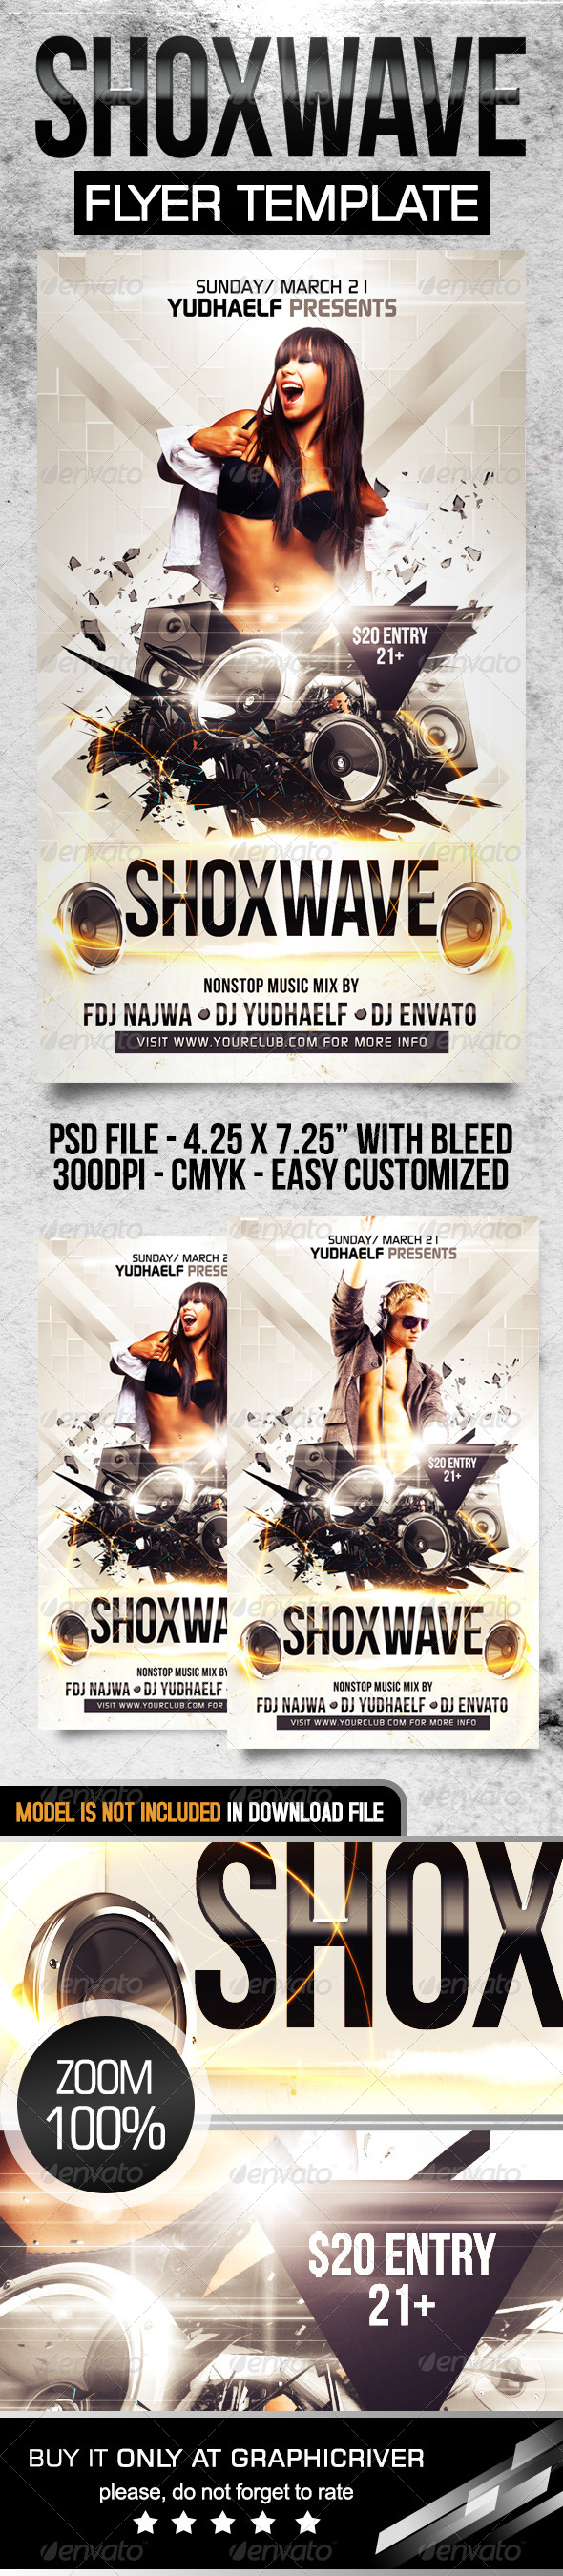 Shoxwave Flyer Template - Flyers Print Templates